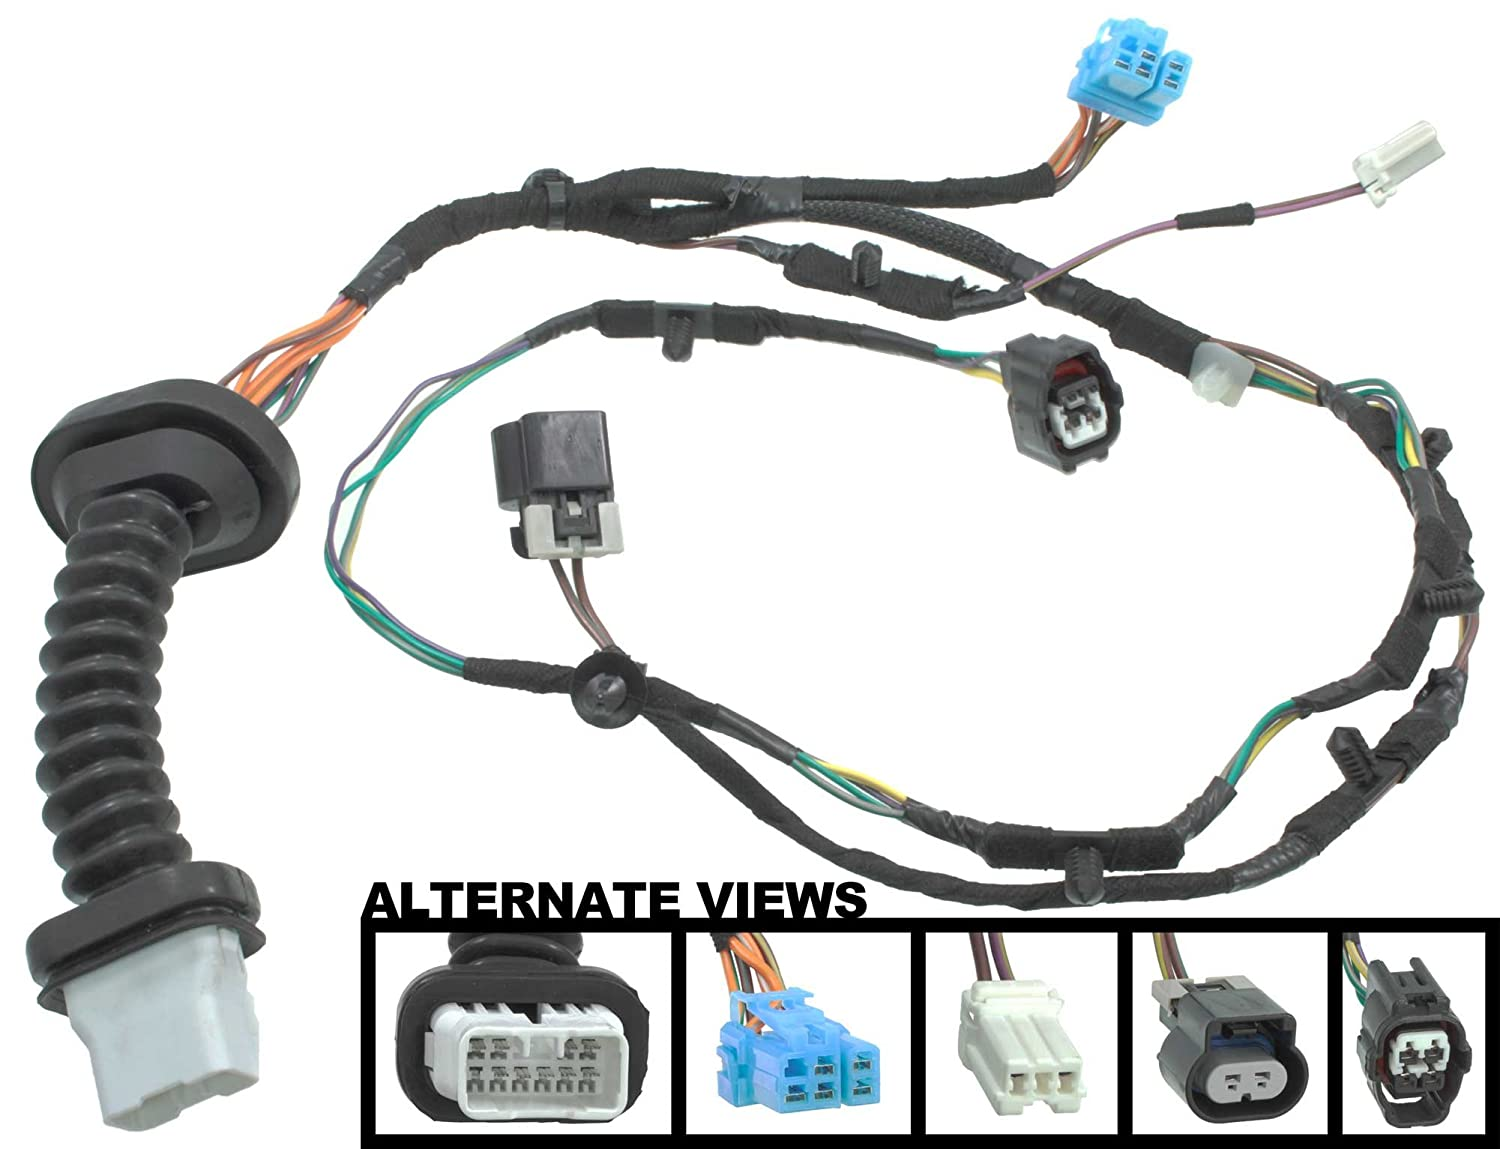 71fJrC9anCL._SL1500_ amazon com apdty 756617 power door lock wiring pigtail connector